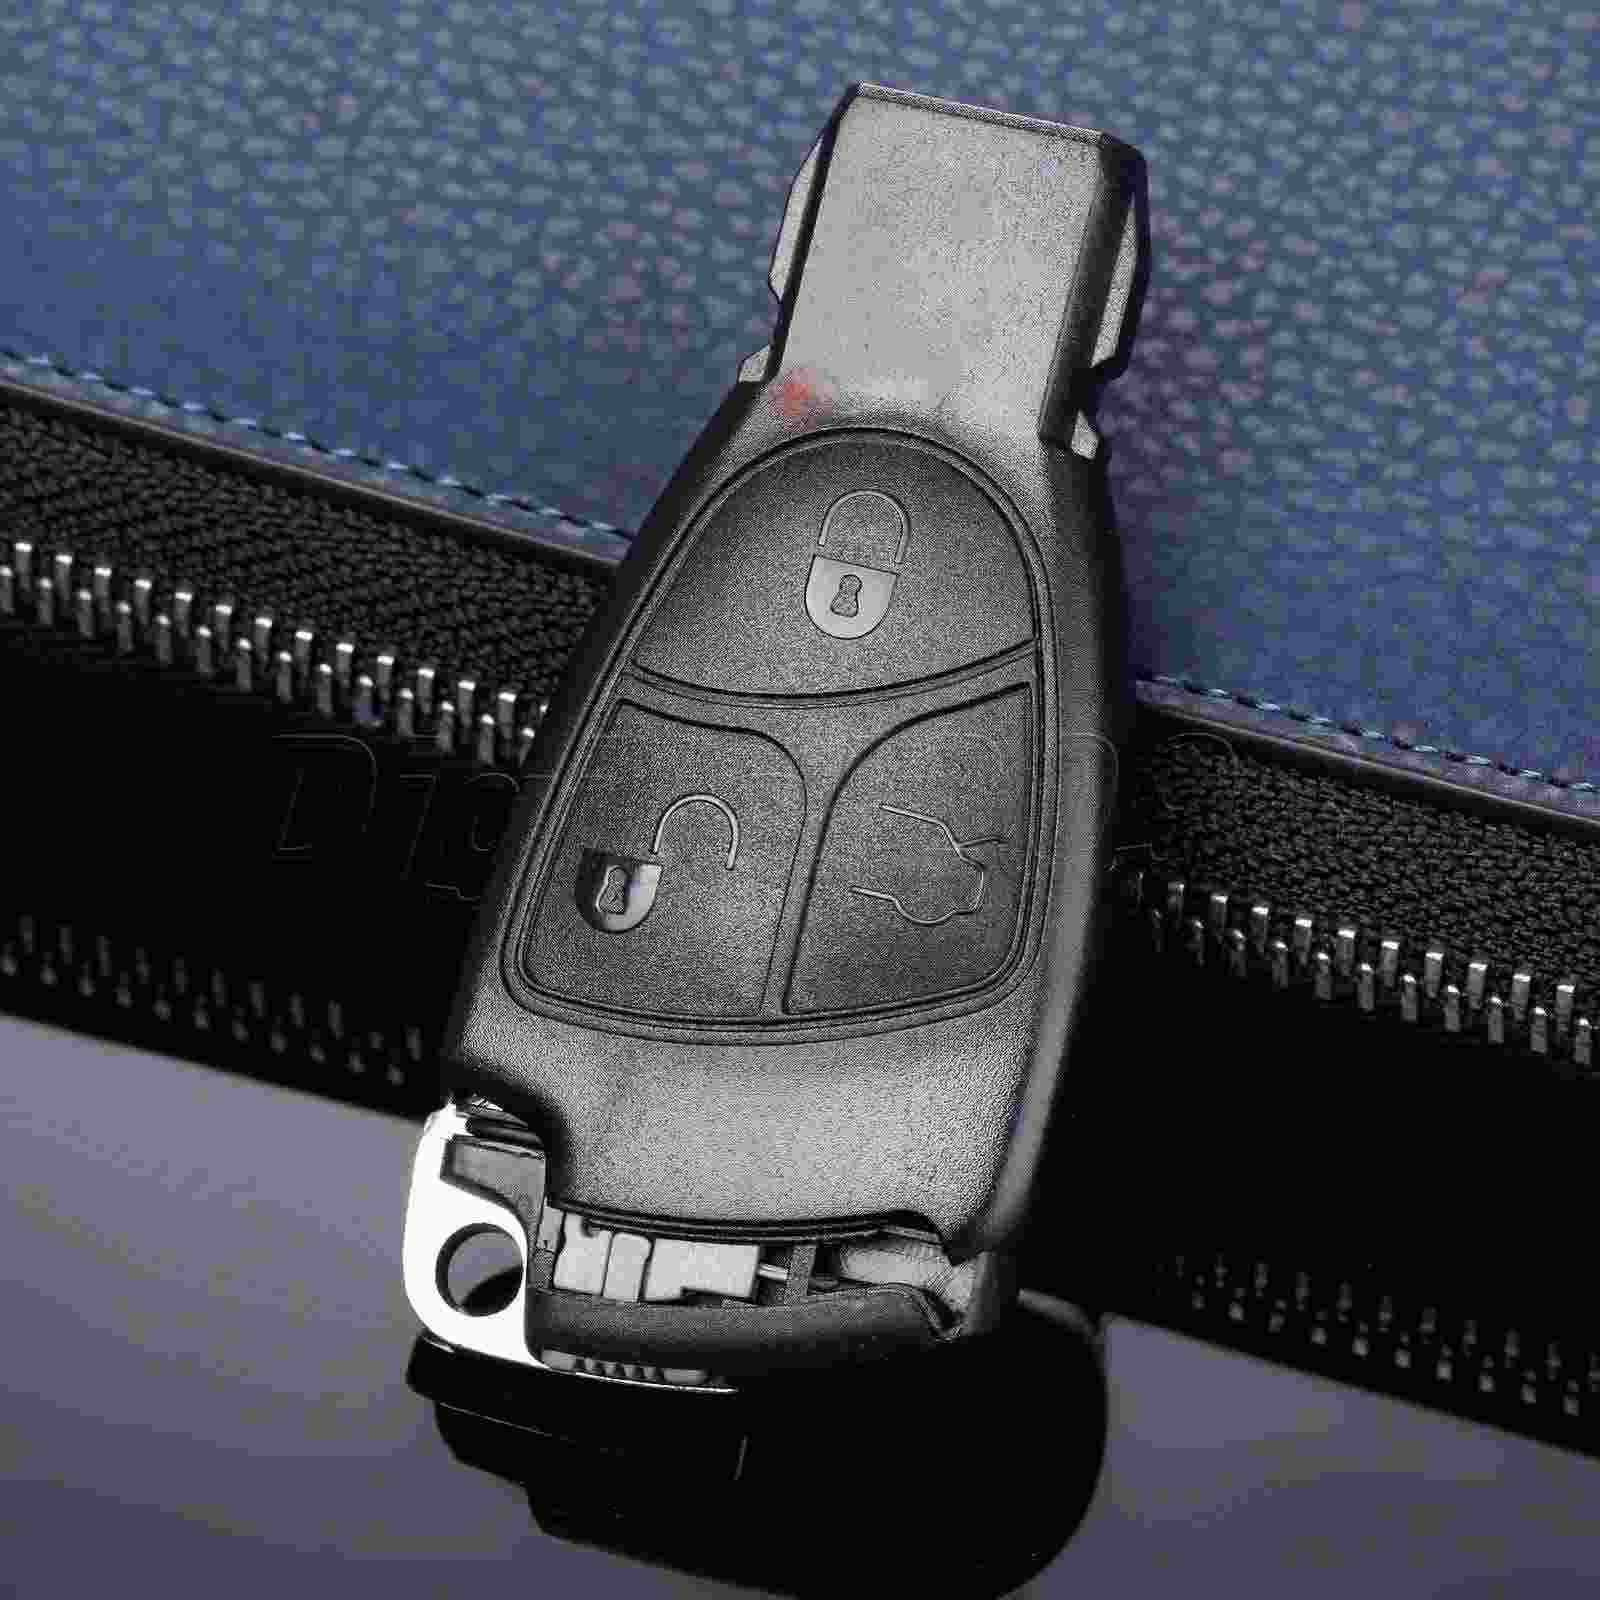 Yetaha 3 Buttons Replacement Shell Remote Key Fob Case Insert Key Tablets For Mercedes Benz C B E S CL CLS CLK ML SLK Car-covers